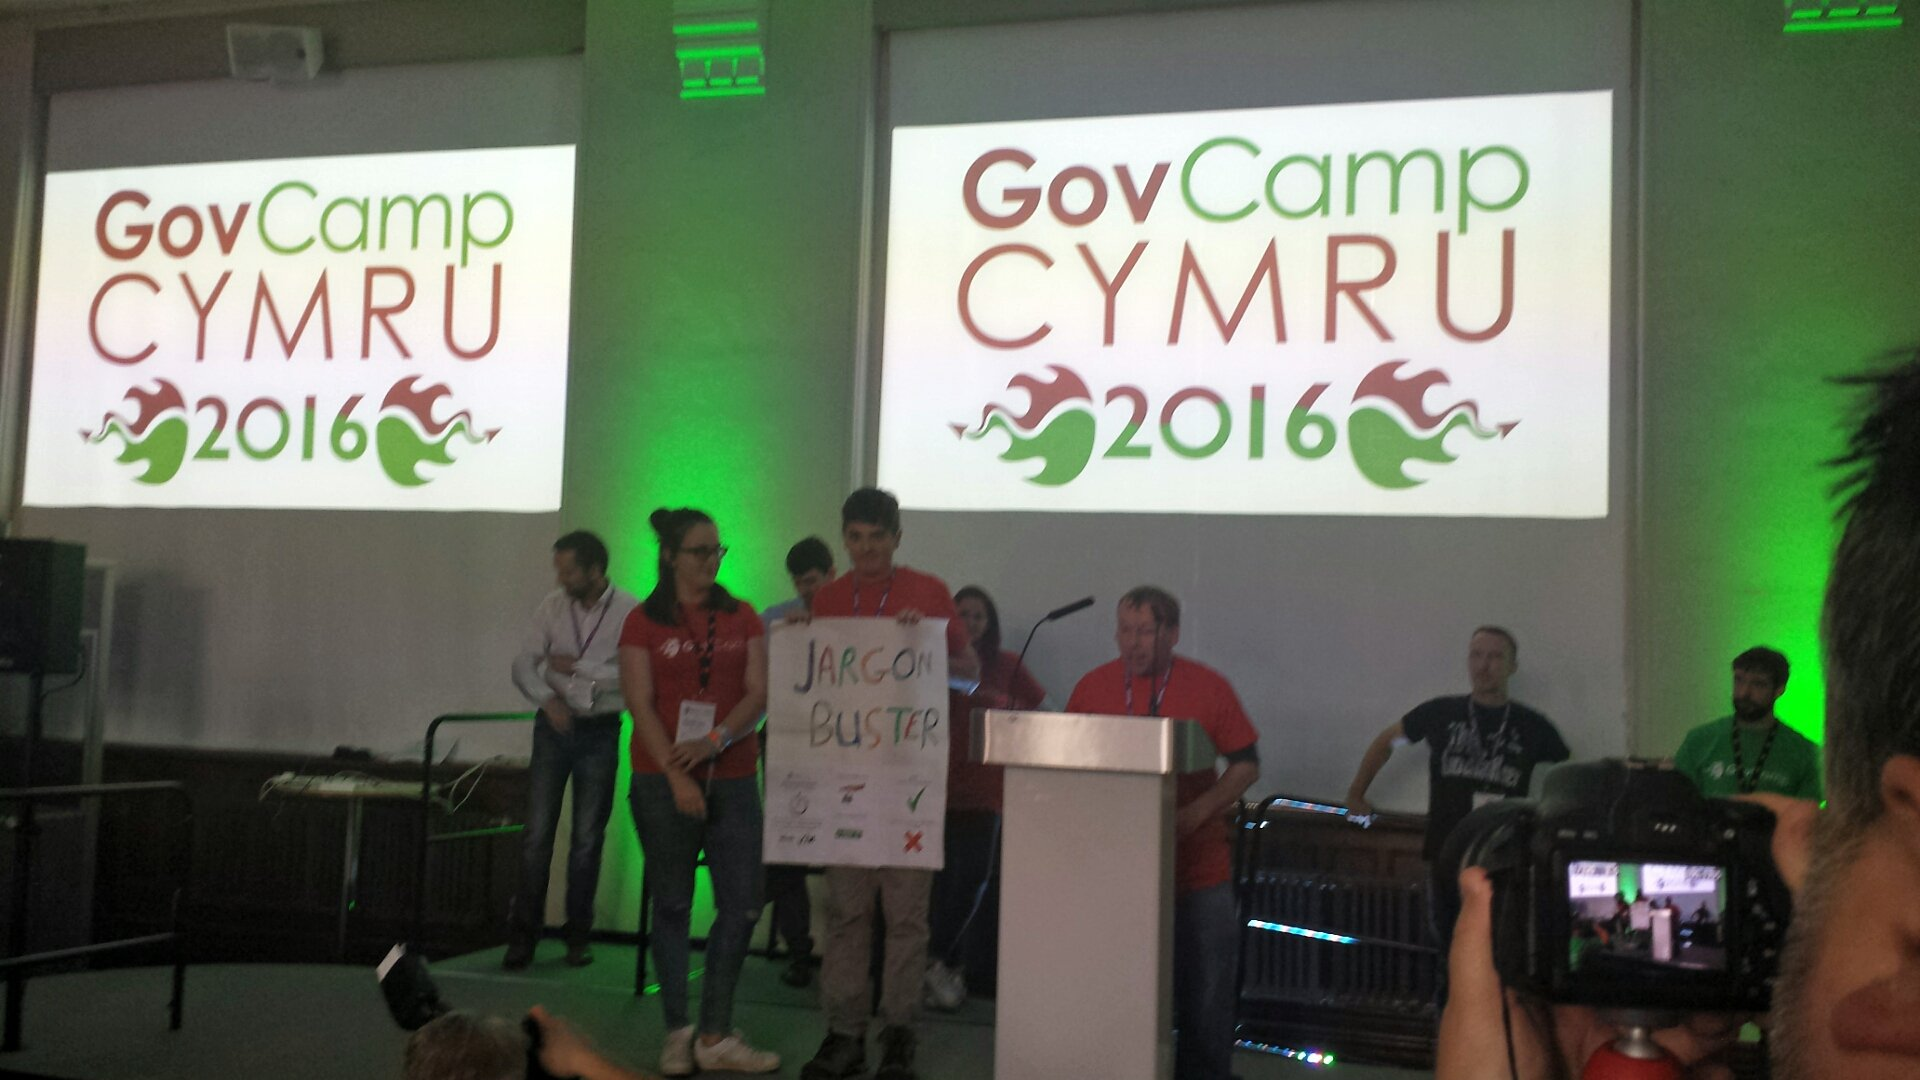 Making our govcamp pitch for jargon busters #gccy16 https://t.co/QejMkRv29x